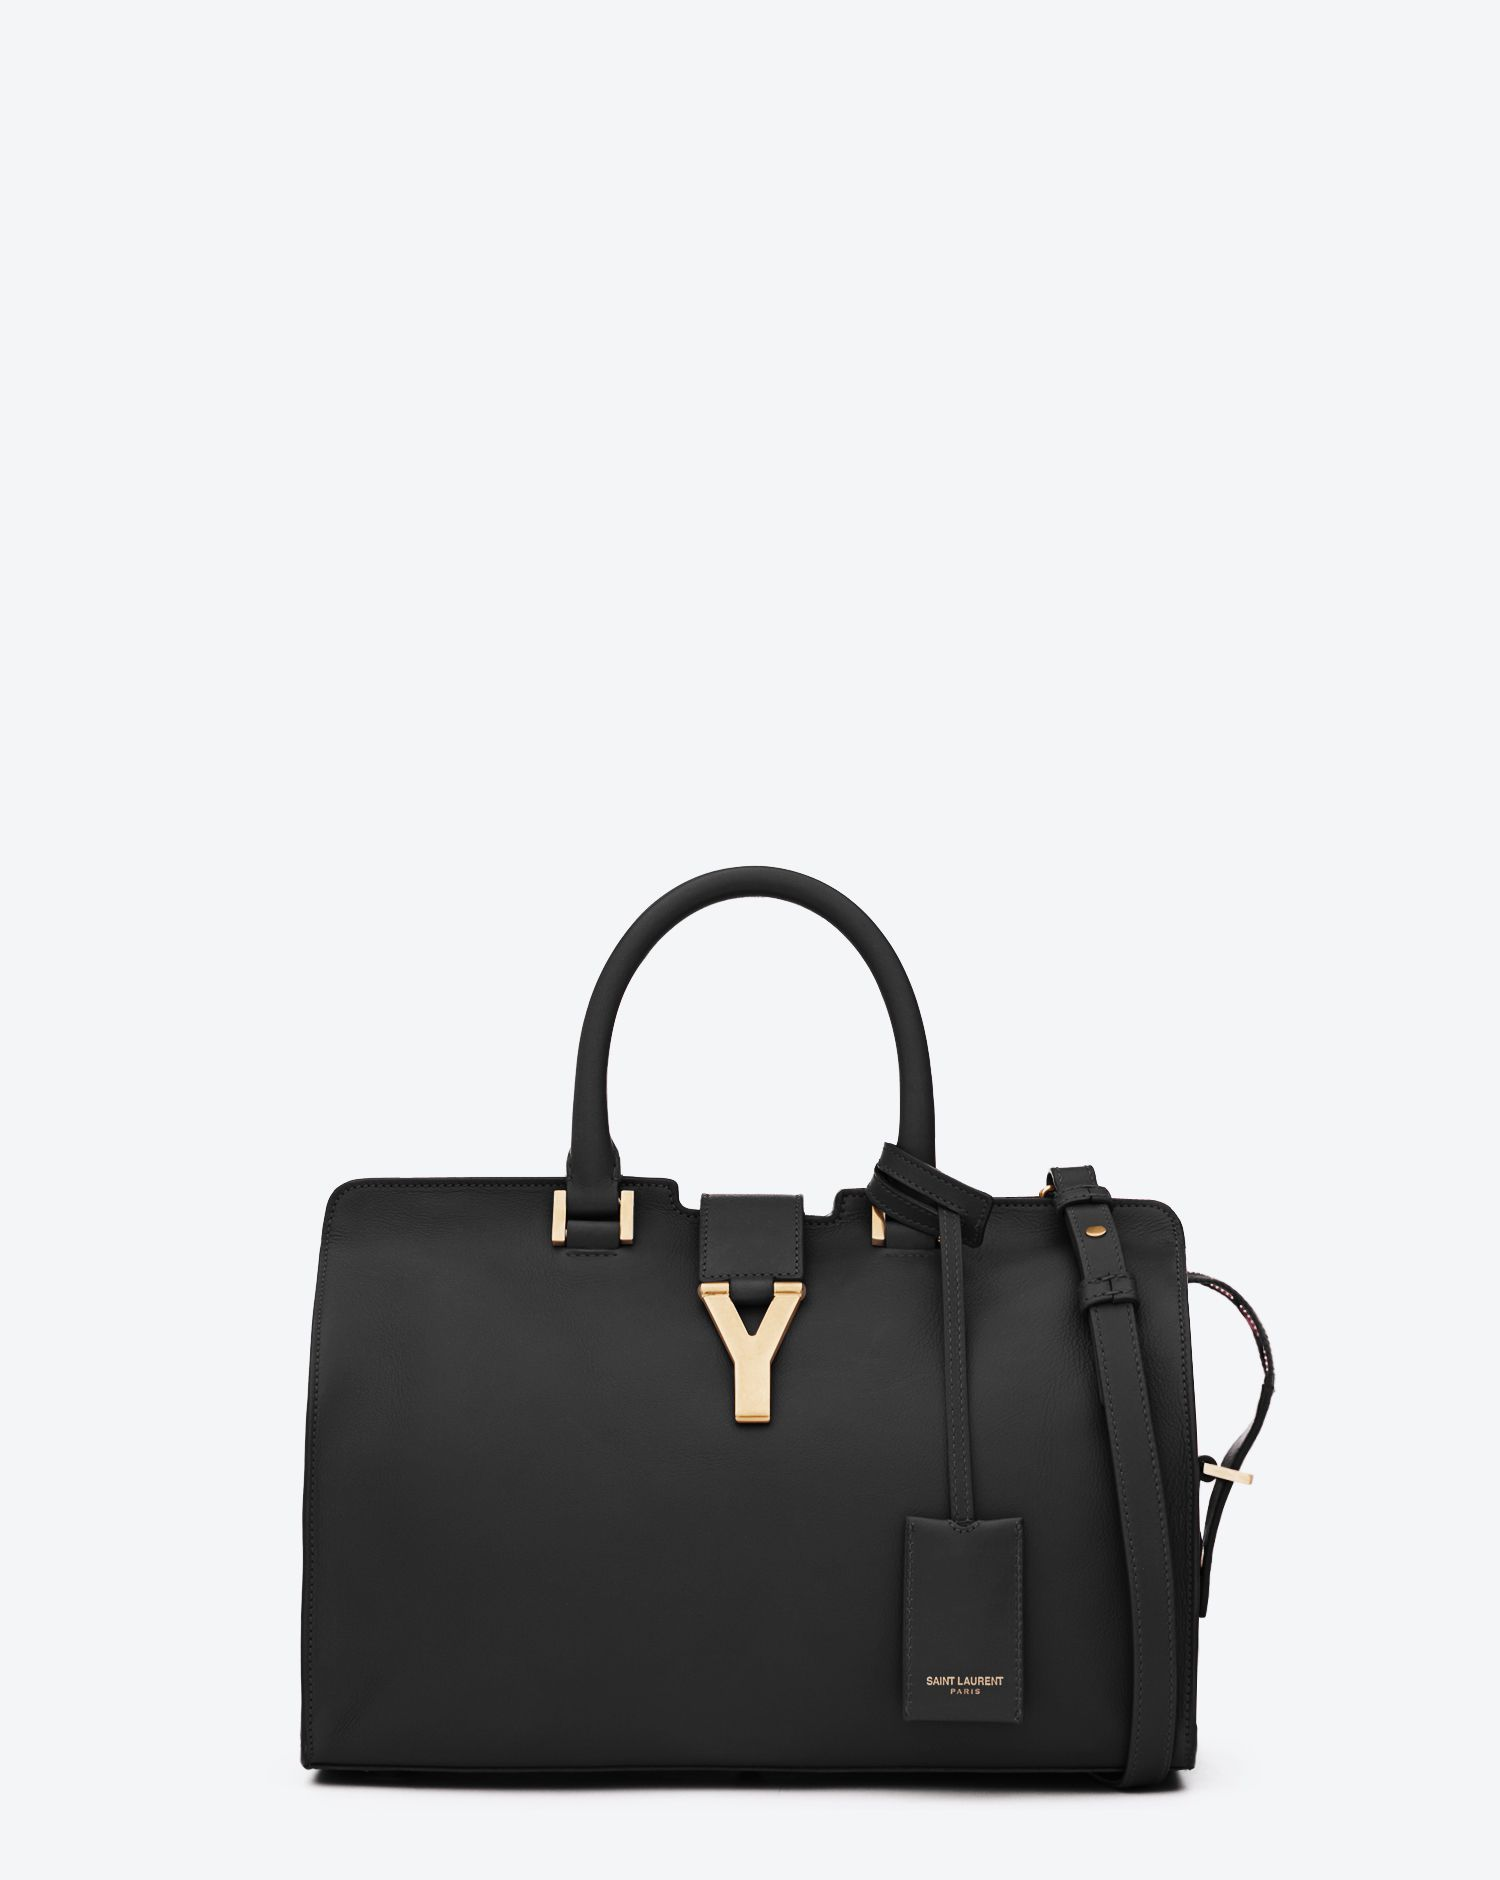 333432e6c2 Saint Laurent Classic Small Y Cabas Bag In Black Leather